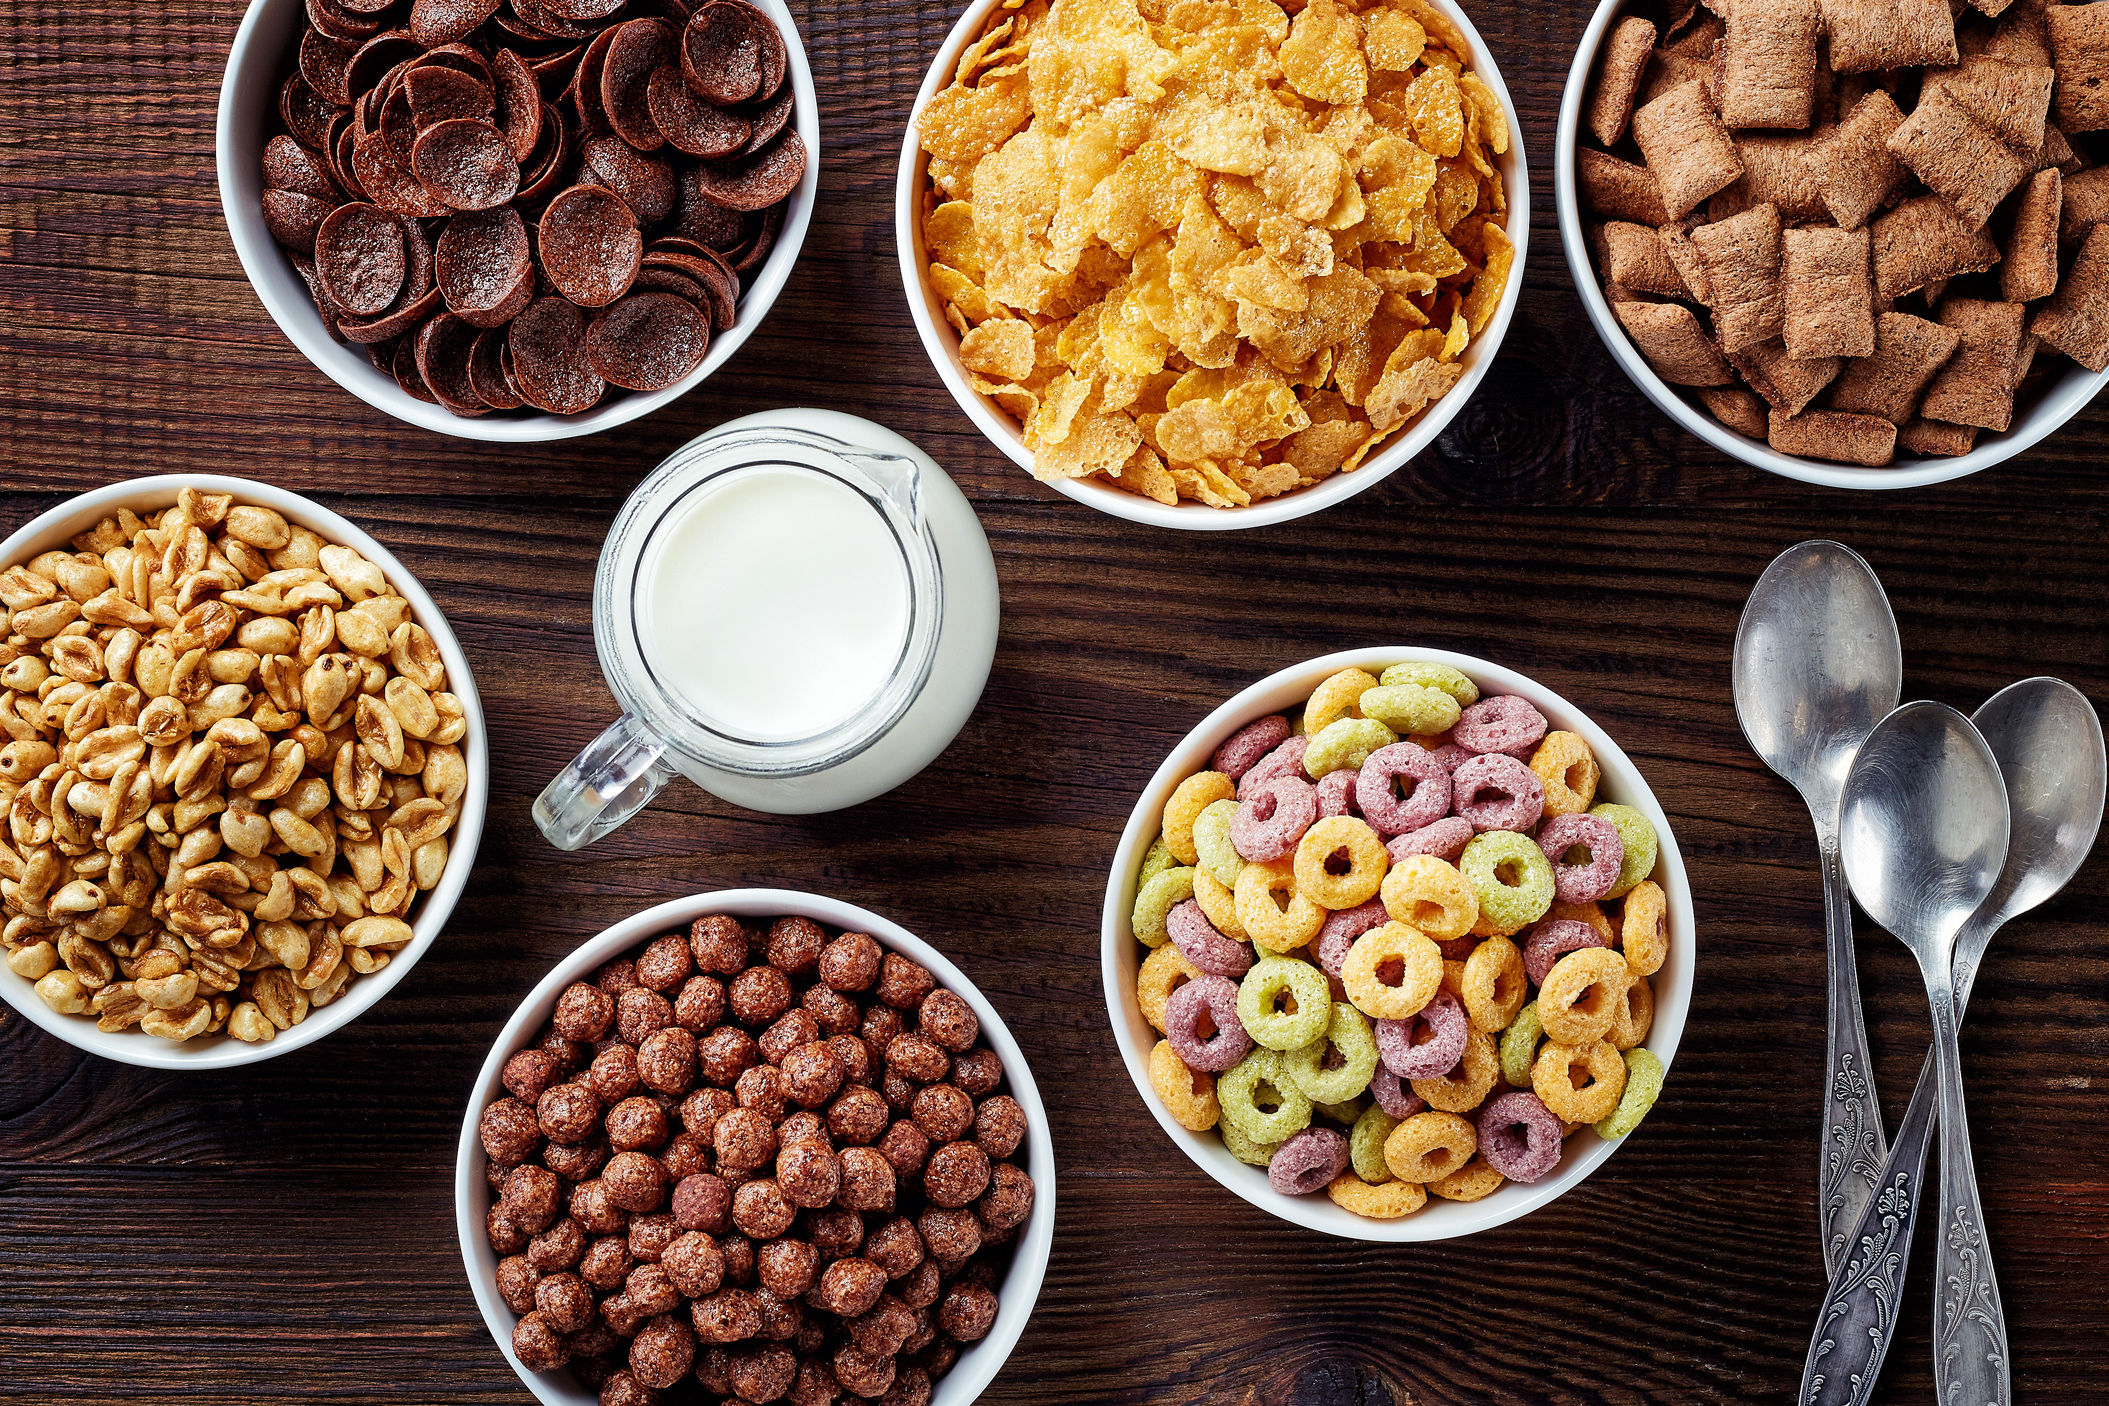 The Most Popular Cereal in Every State, According to Google